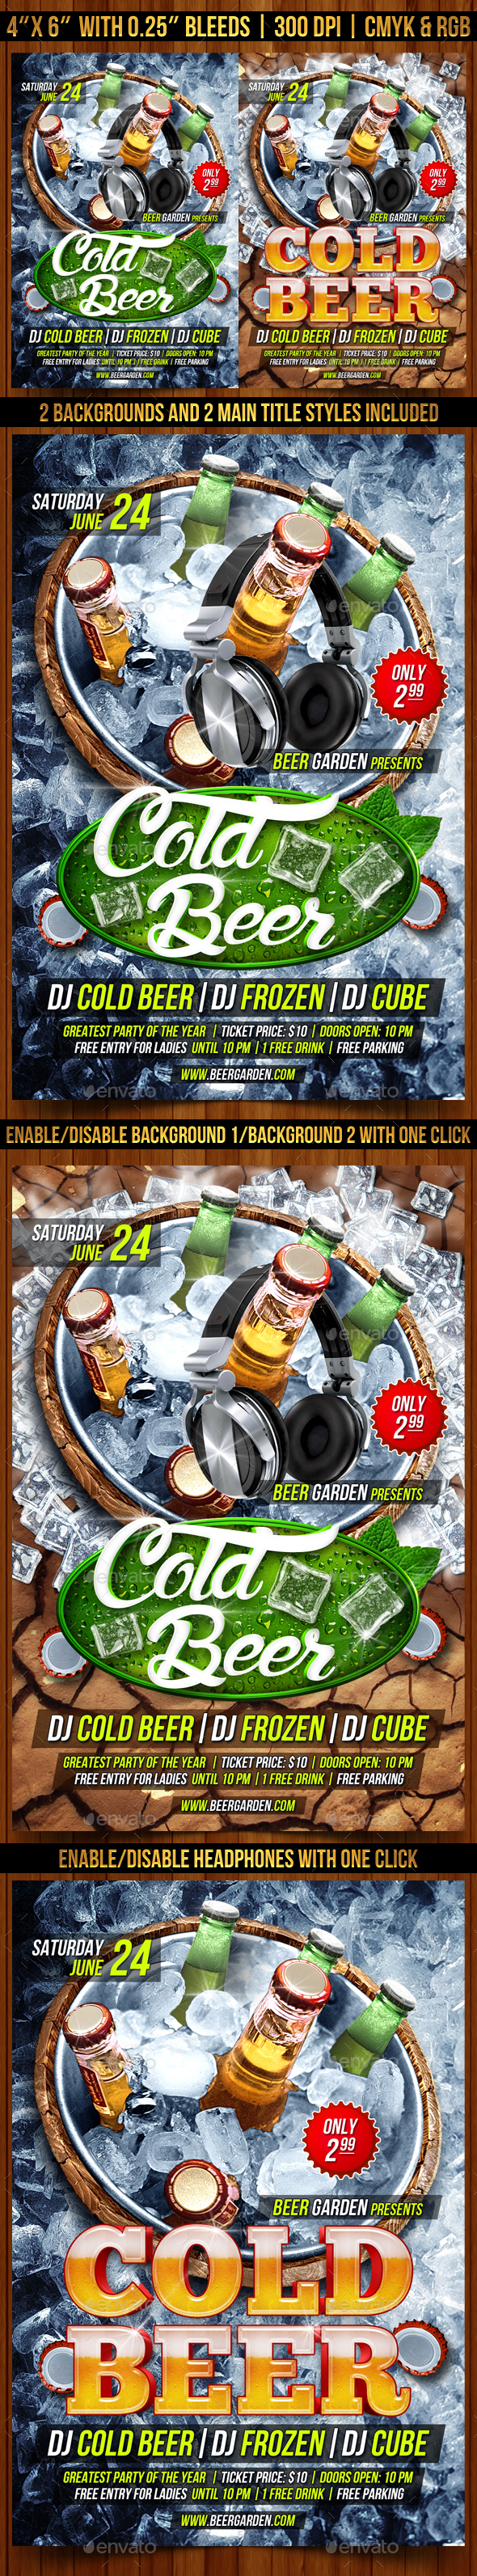 Cold Beer Flyer Template - Clubs & Parties Events